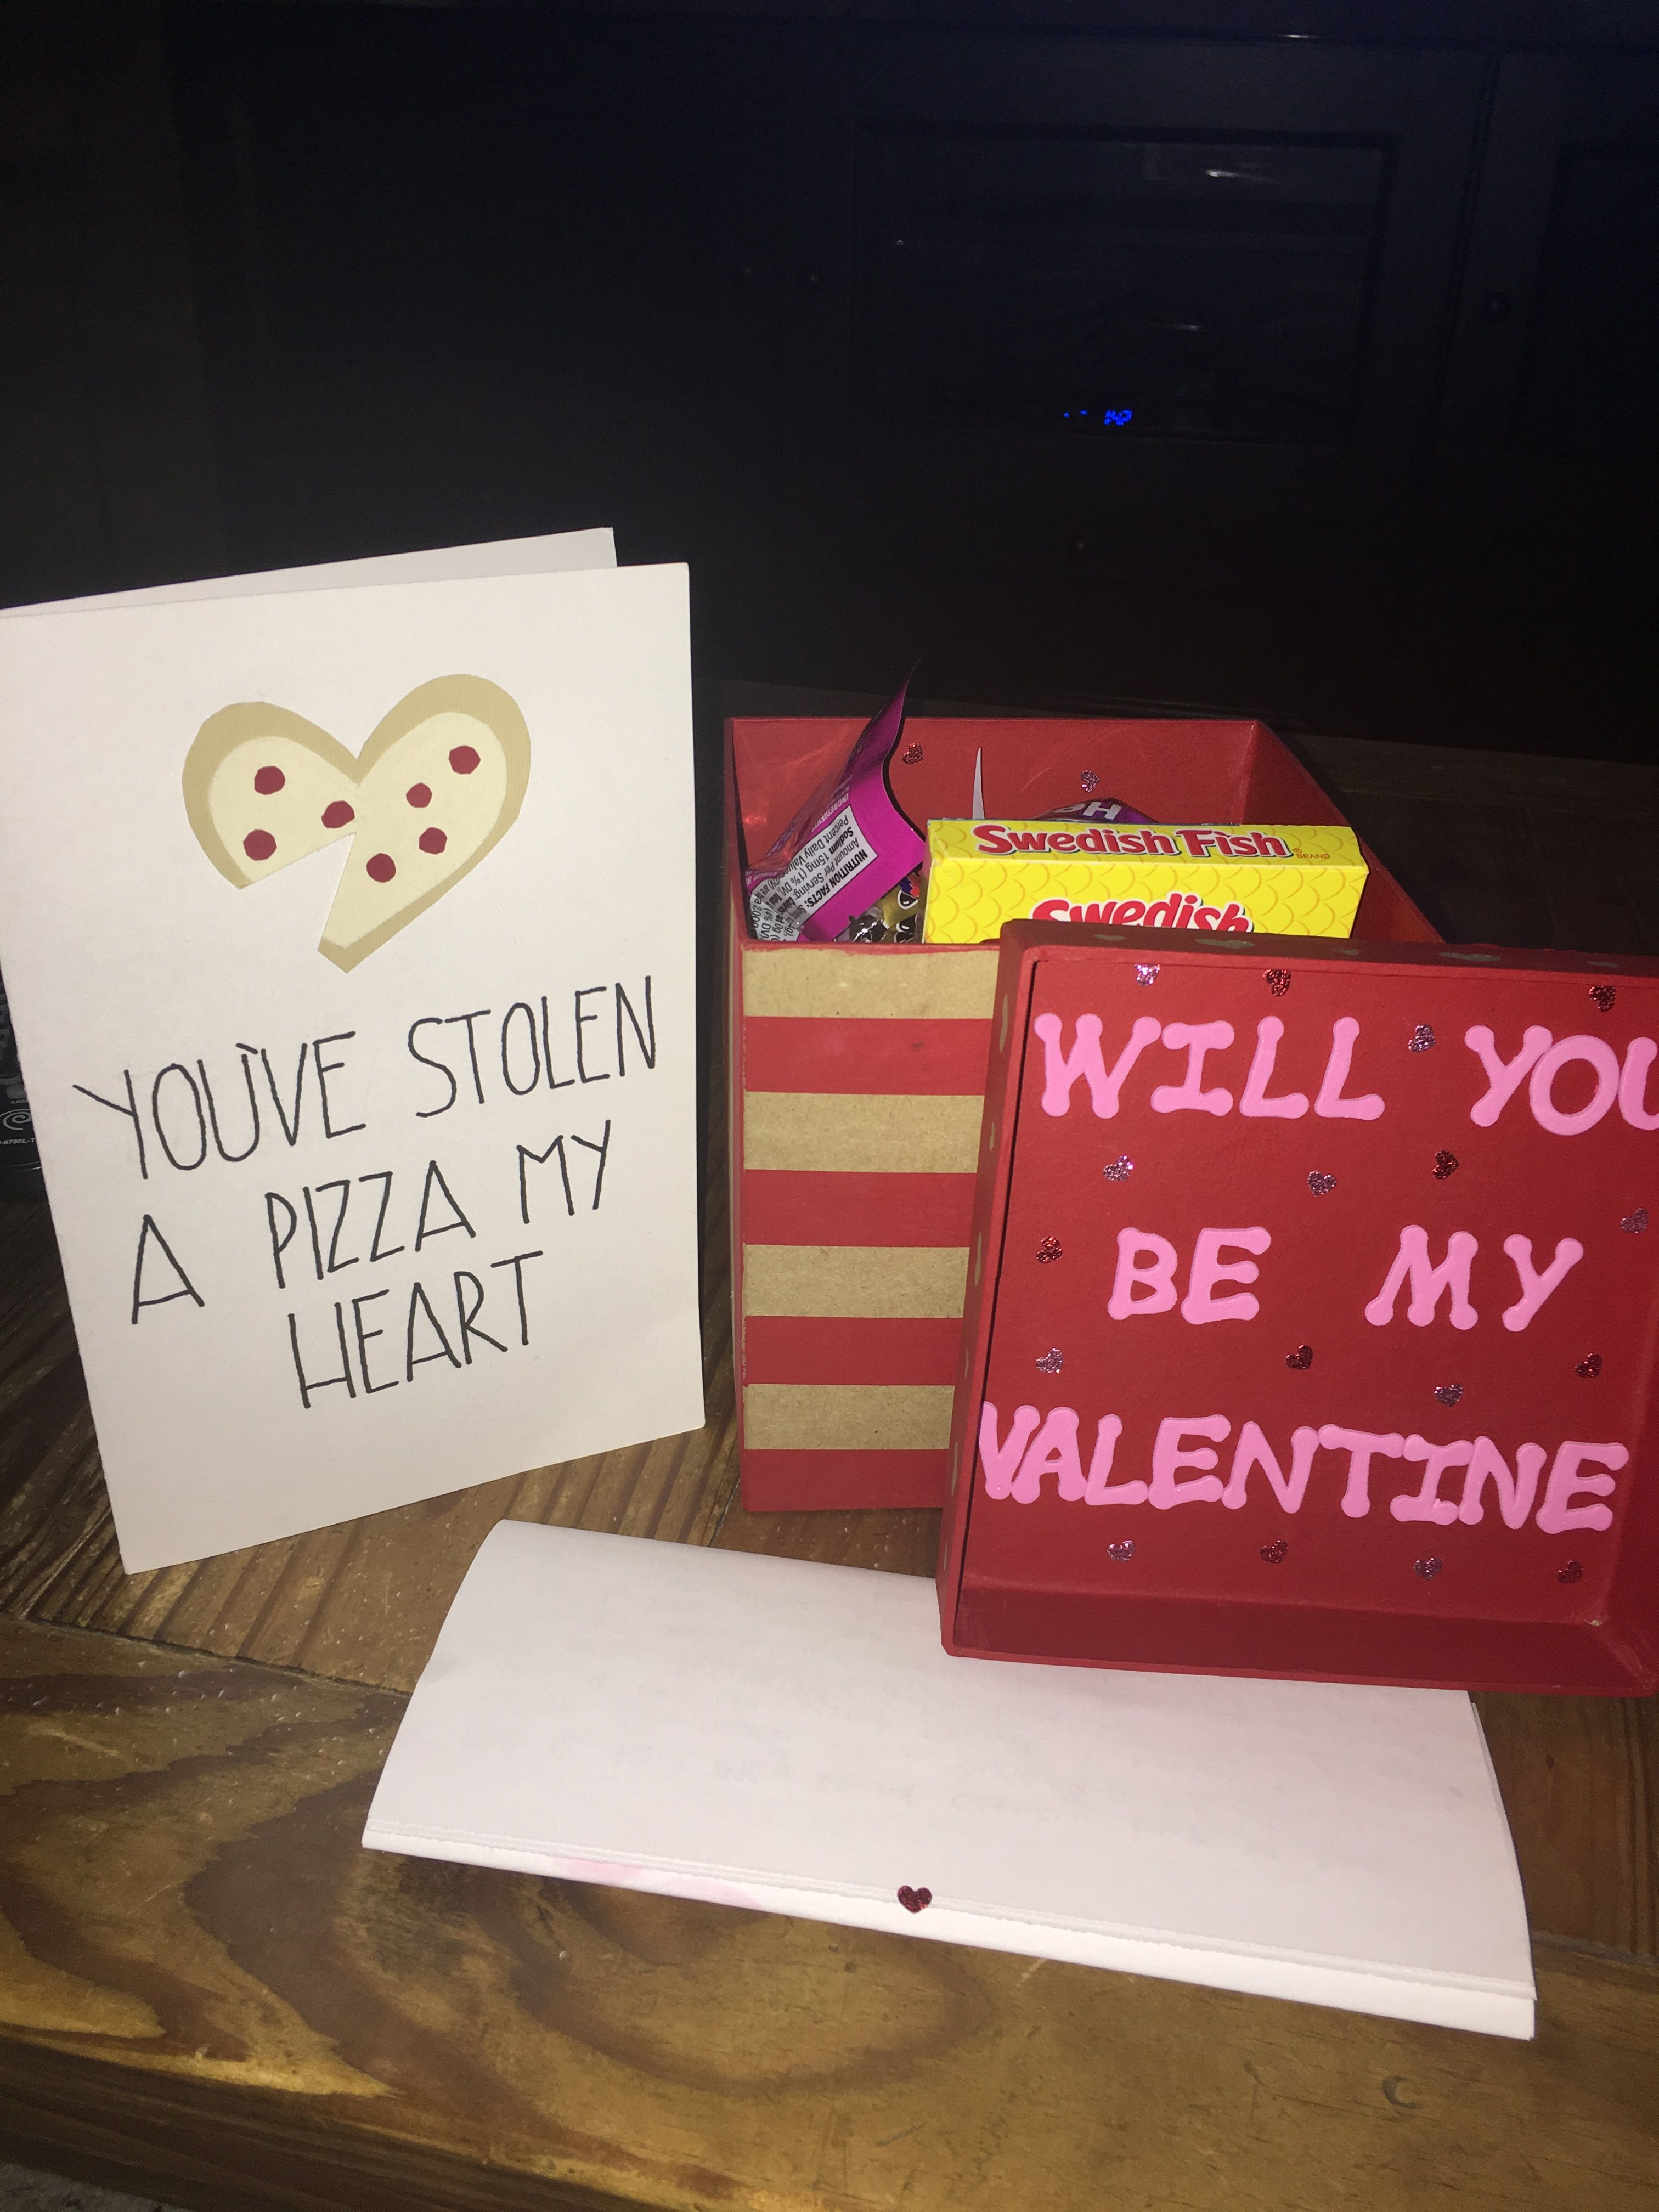 Diy Gift Ideas For Girlfriend Cute Valentine 39s Day Gift Idea For Boyfriend Girlfriend